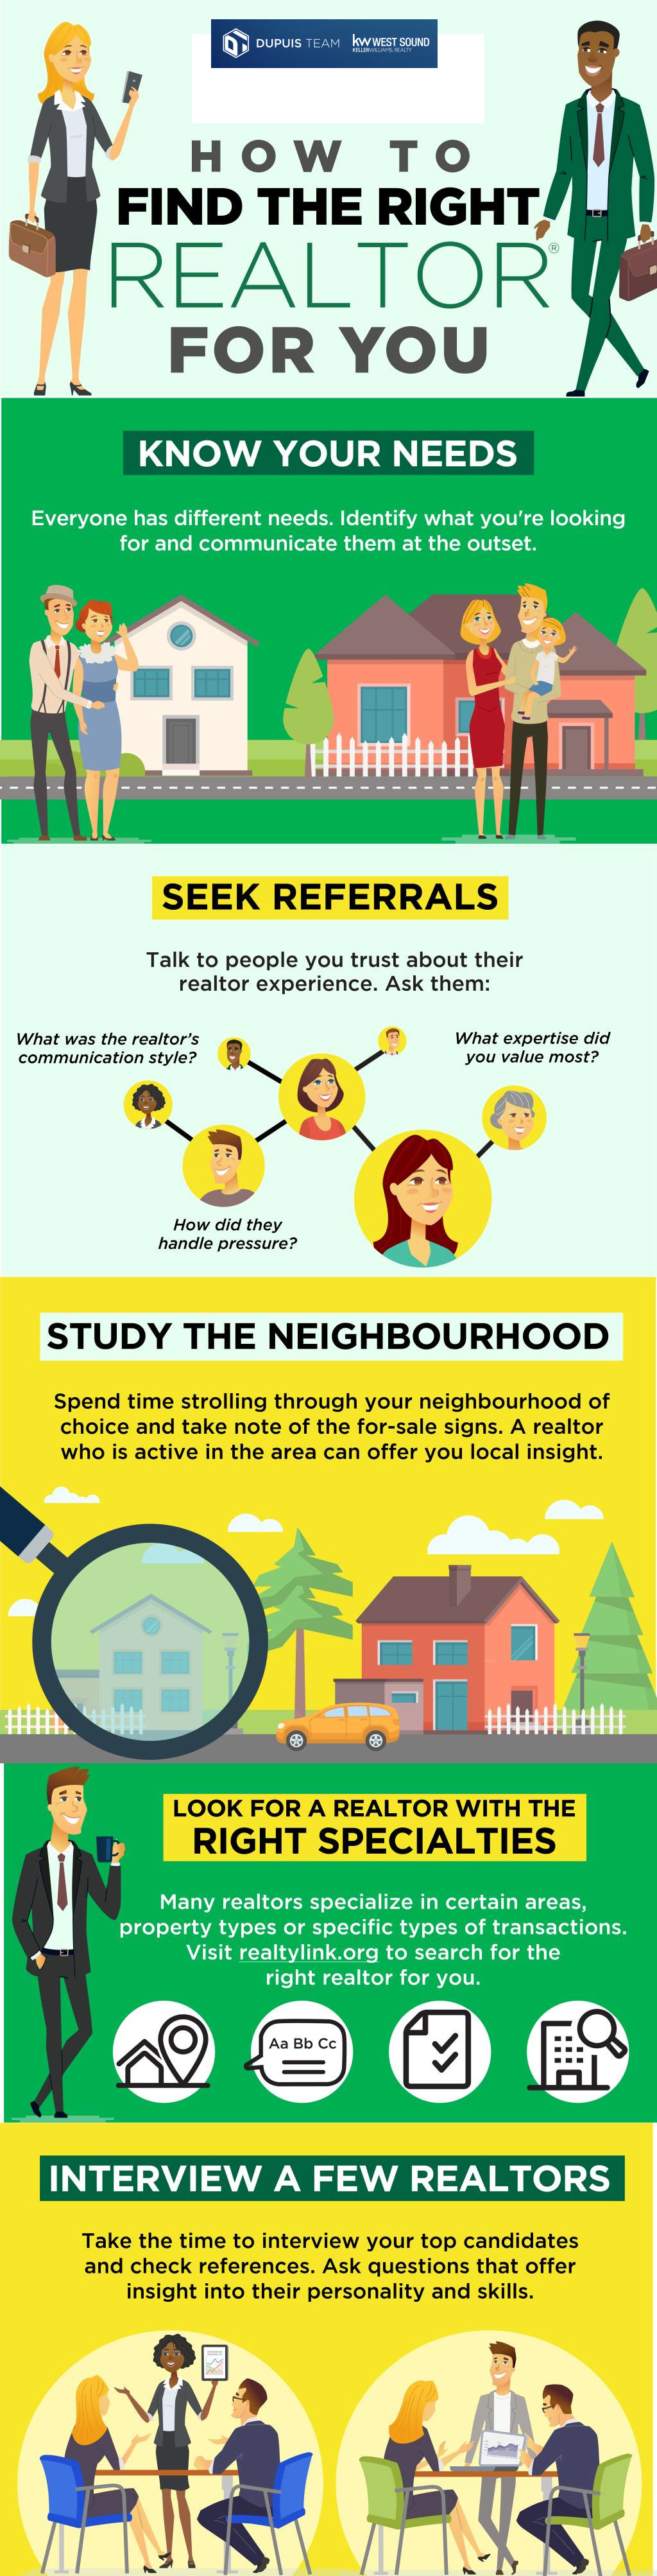 Infographic: How to Find the Right Realtor for You